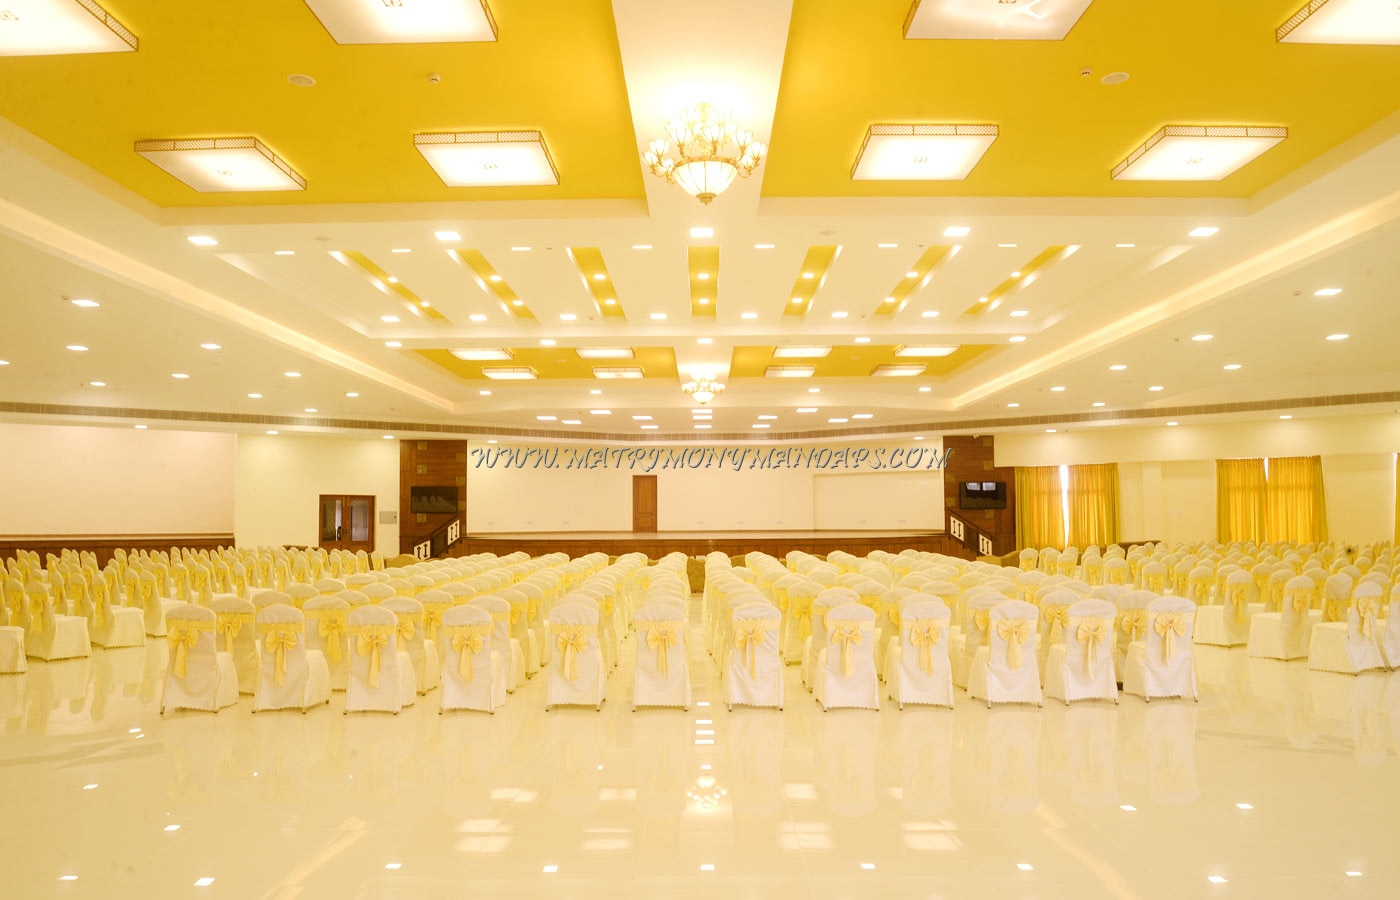 Find the availability of the Shree Chaitanya Function Hall (A/C) in OMR, Chennai and avail special offers